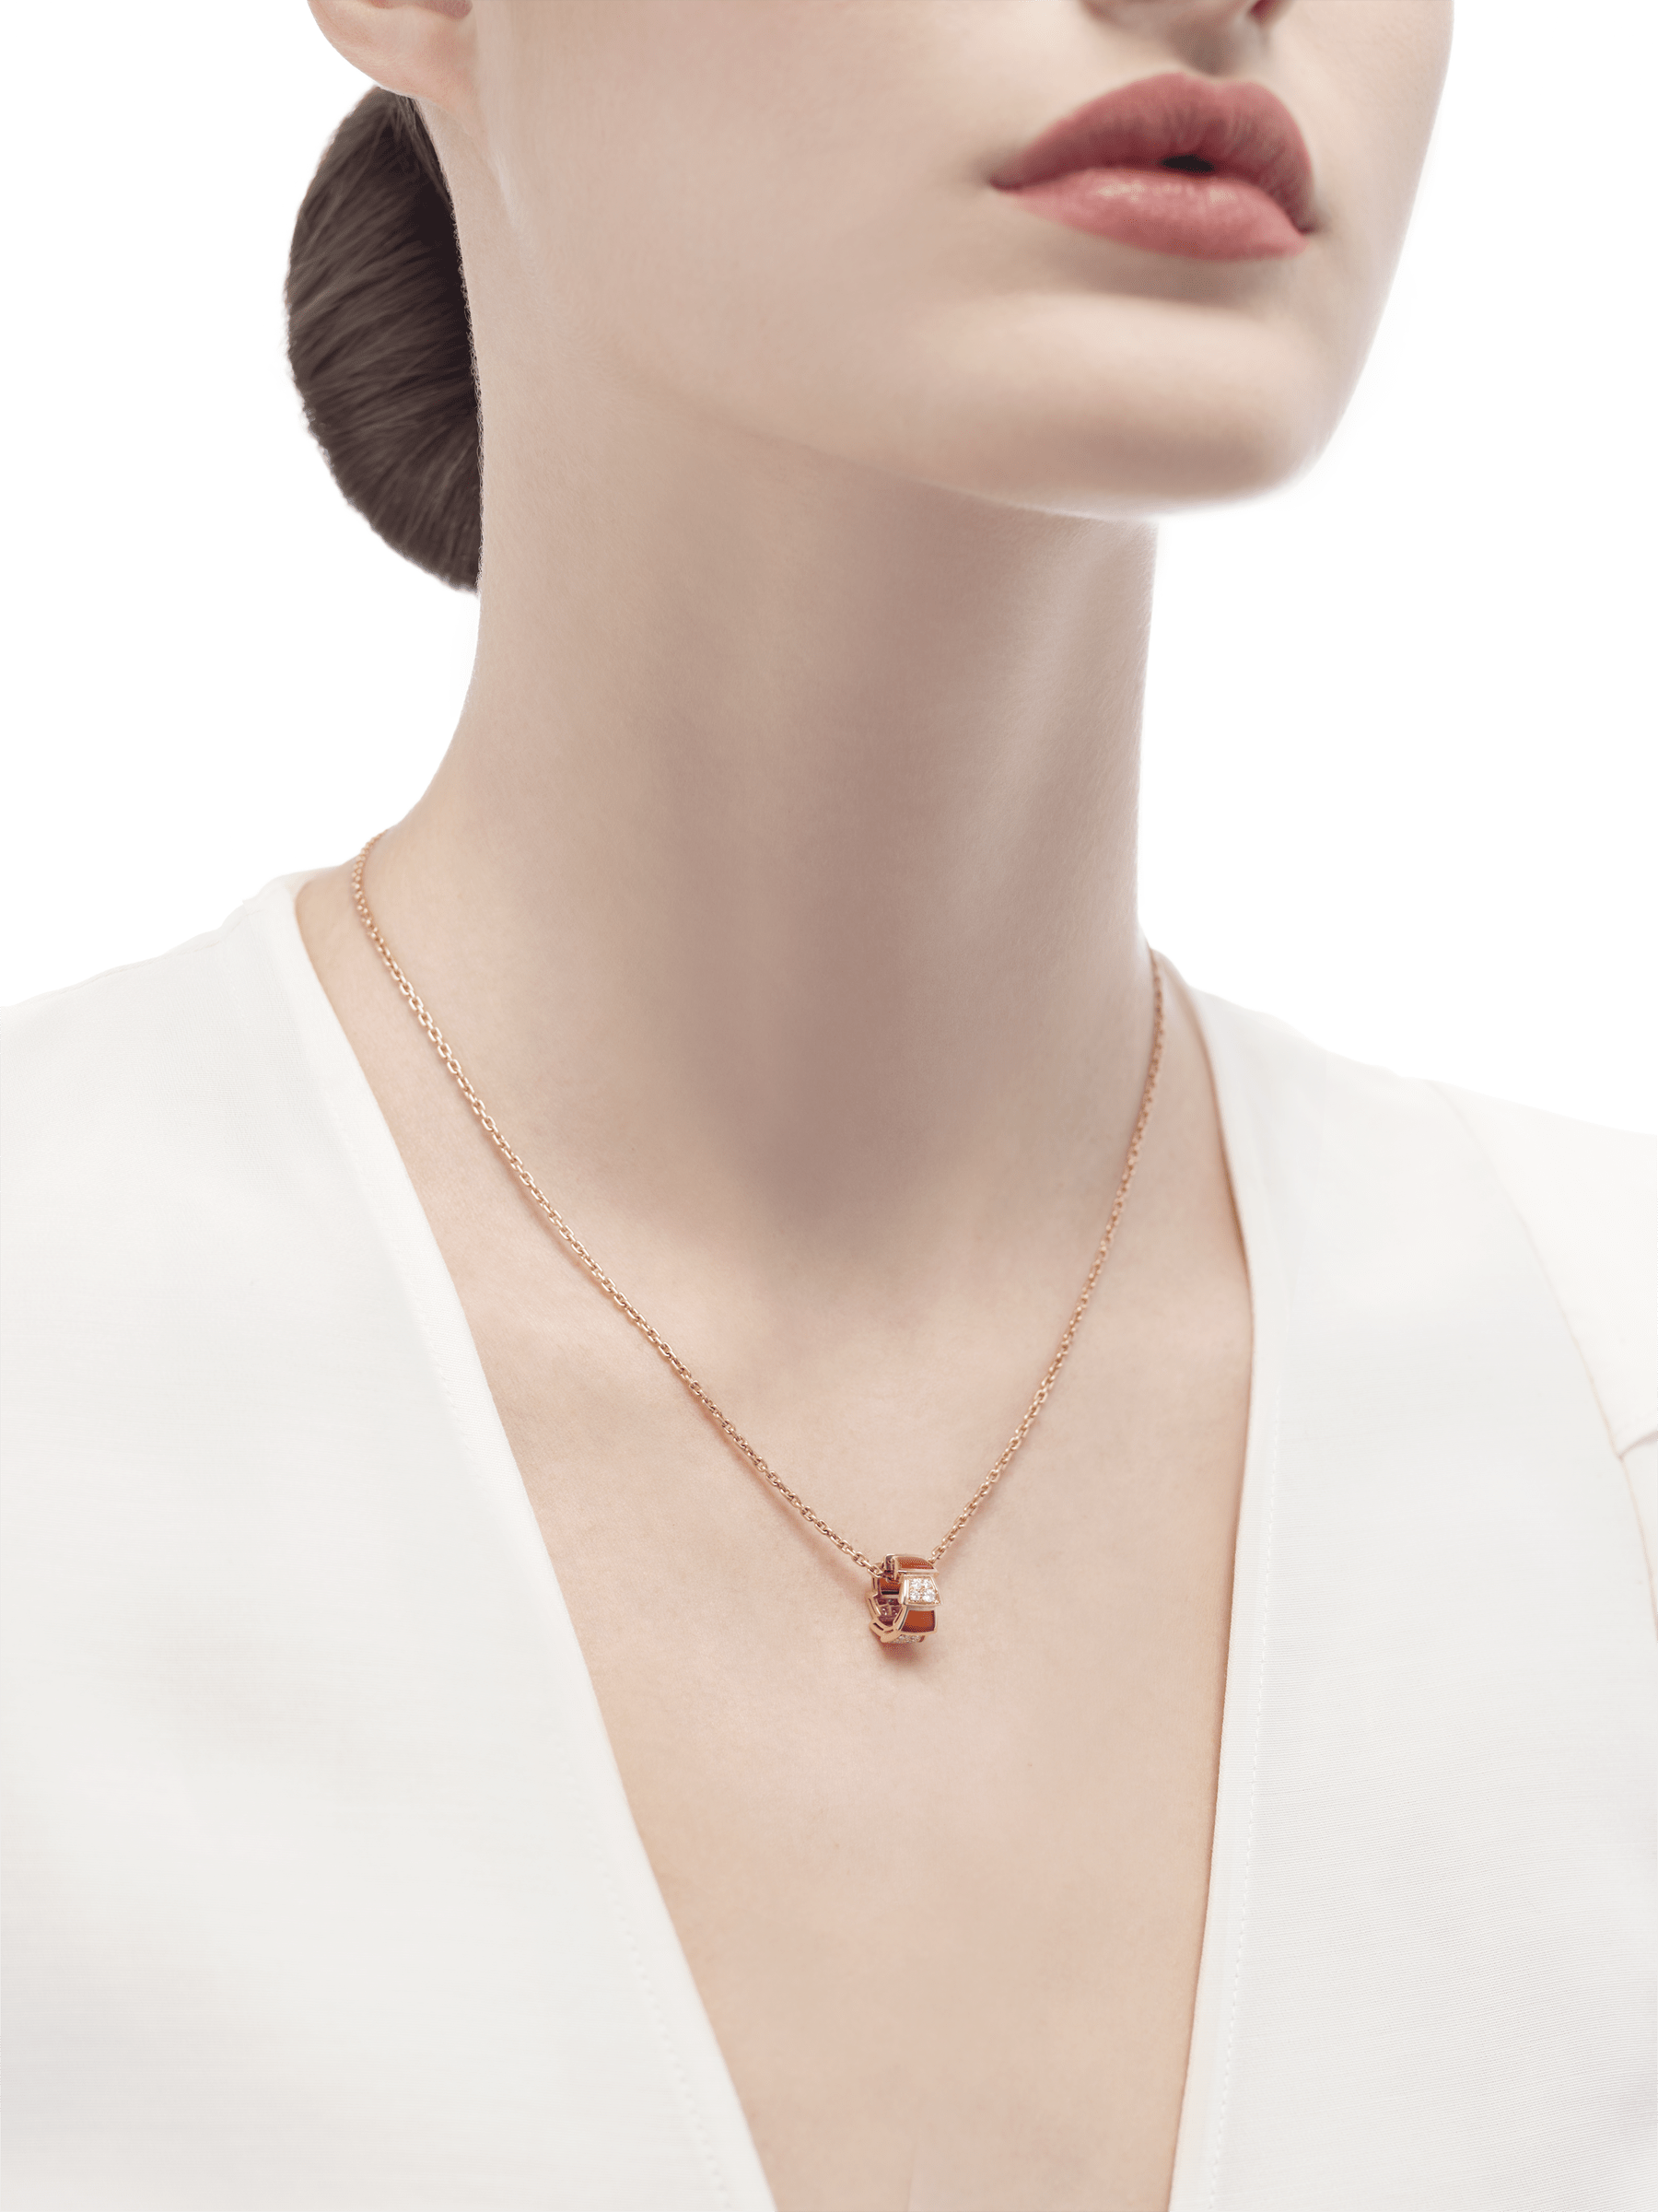 Serpenti Viper necklace with 18 kt rose gold chain and 18 kt rose gold pendant set with carnelian elements and demi-pavé diamonds. 355088 image 4